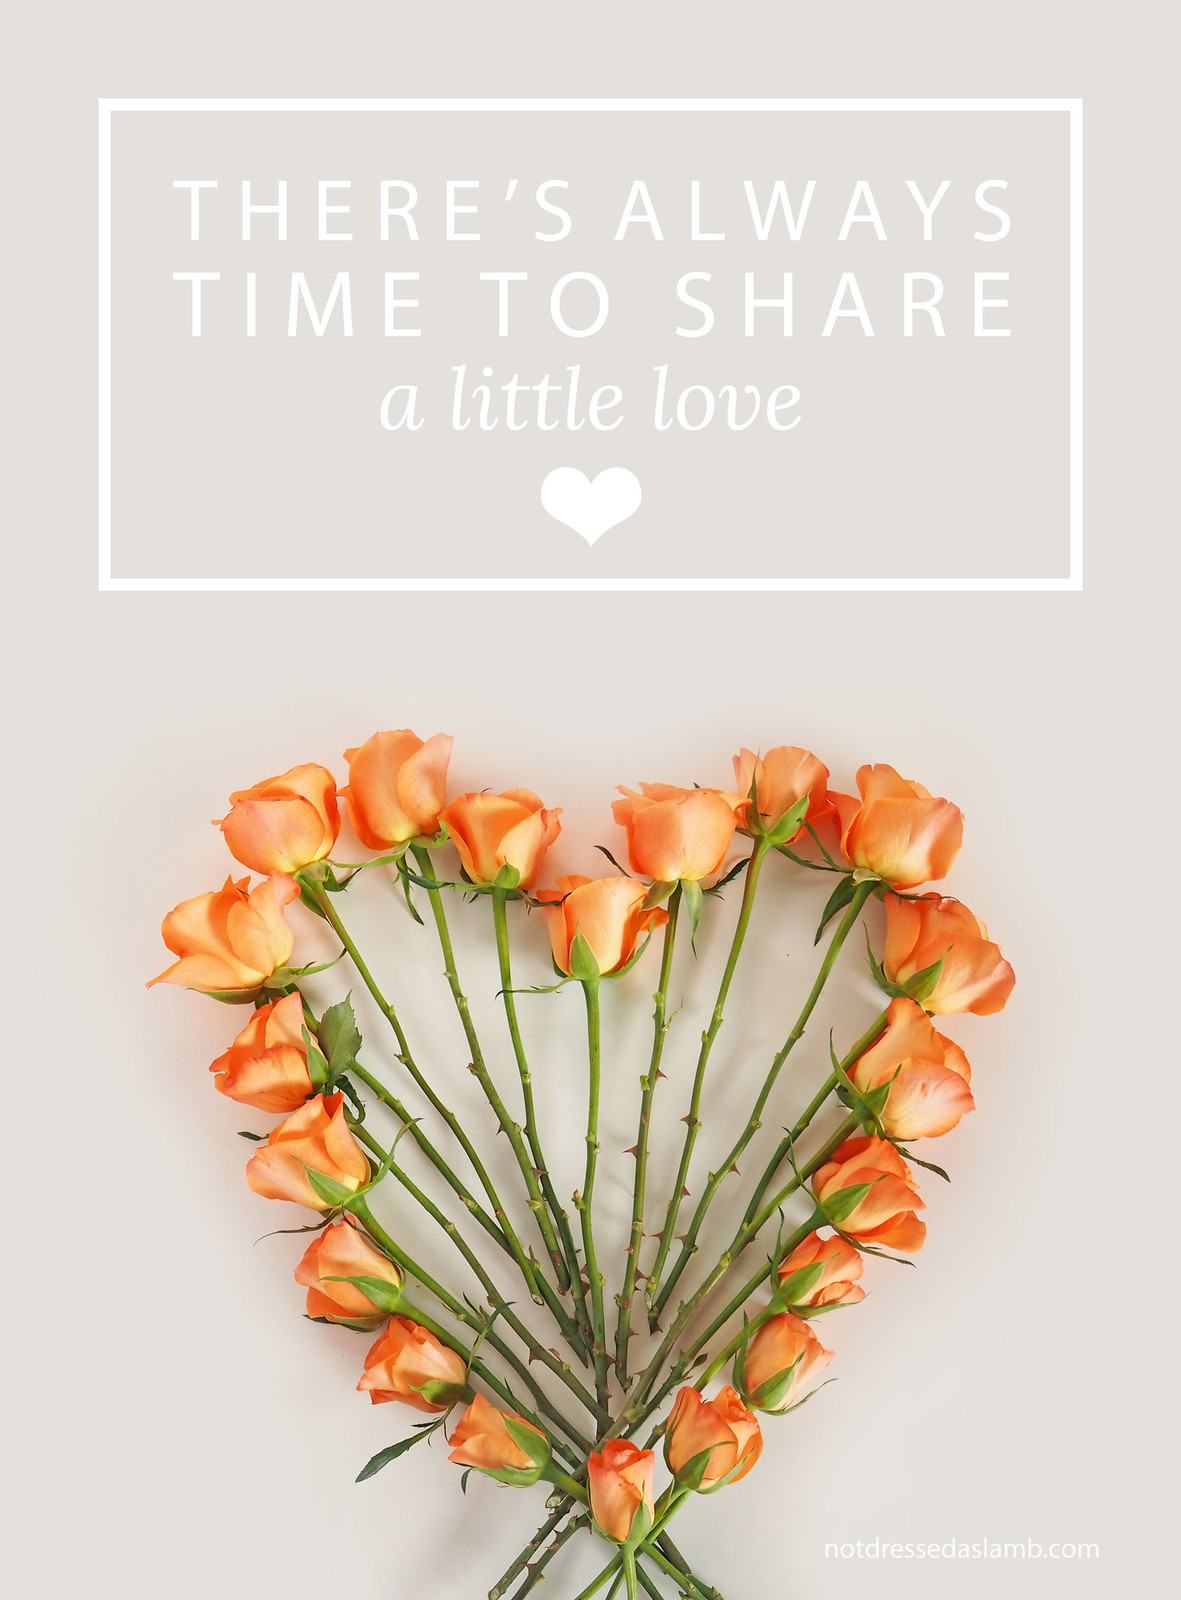 There's always time to share a little love | Not Dressed As Lamb, over 40 style blog